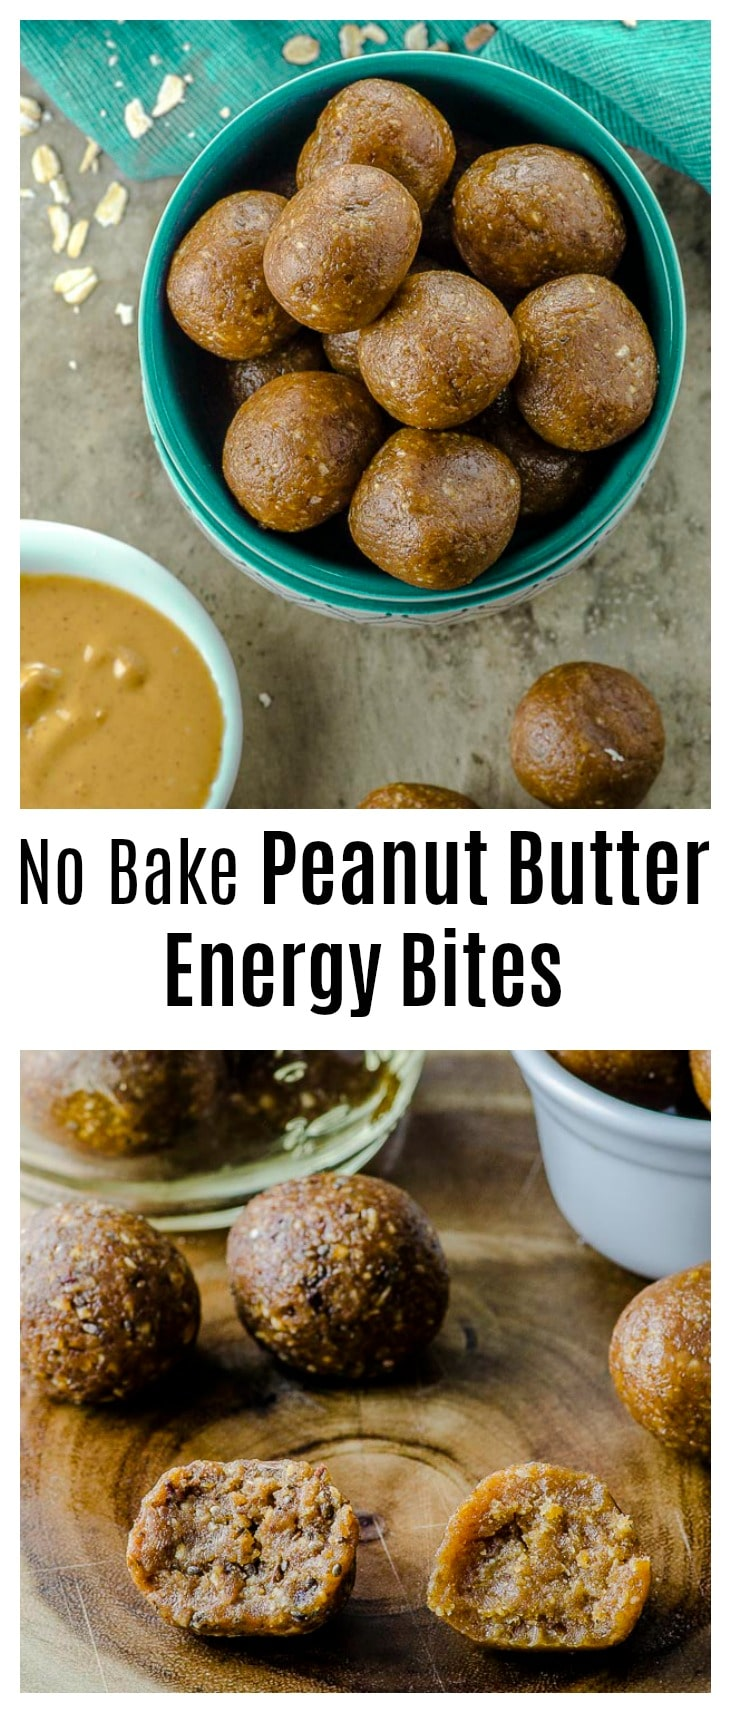 Our No-Bake Peanut Butter Energy Bites are packed with nutrients, power, and flavor! Great for school lunches and as a post-workout snack. #snack #peanut butter #energy Bites, #energy #vegan #post-workout #dates #healthy #all-natural